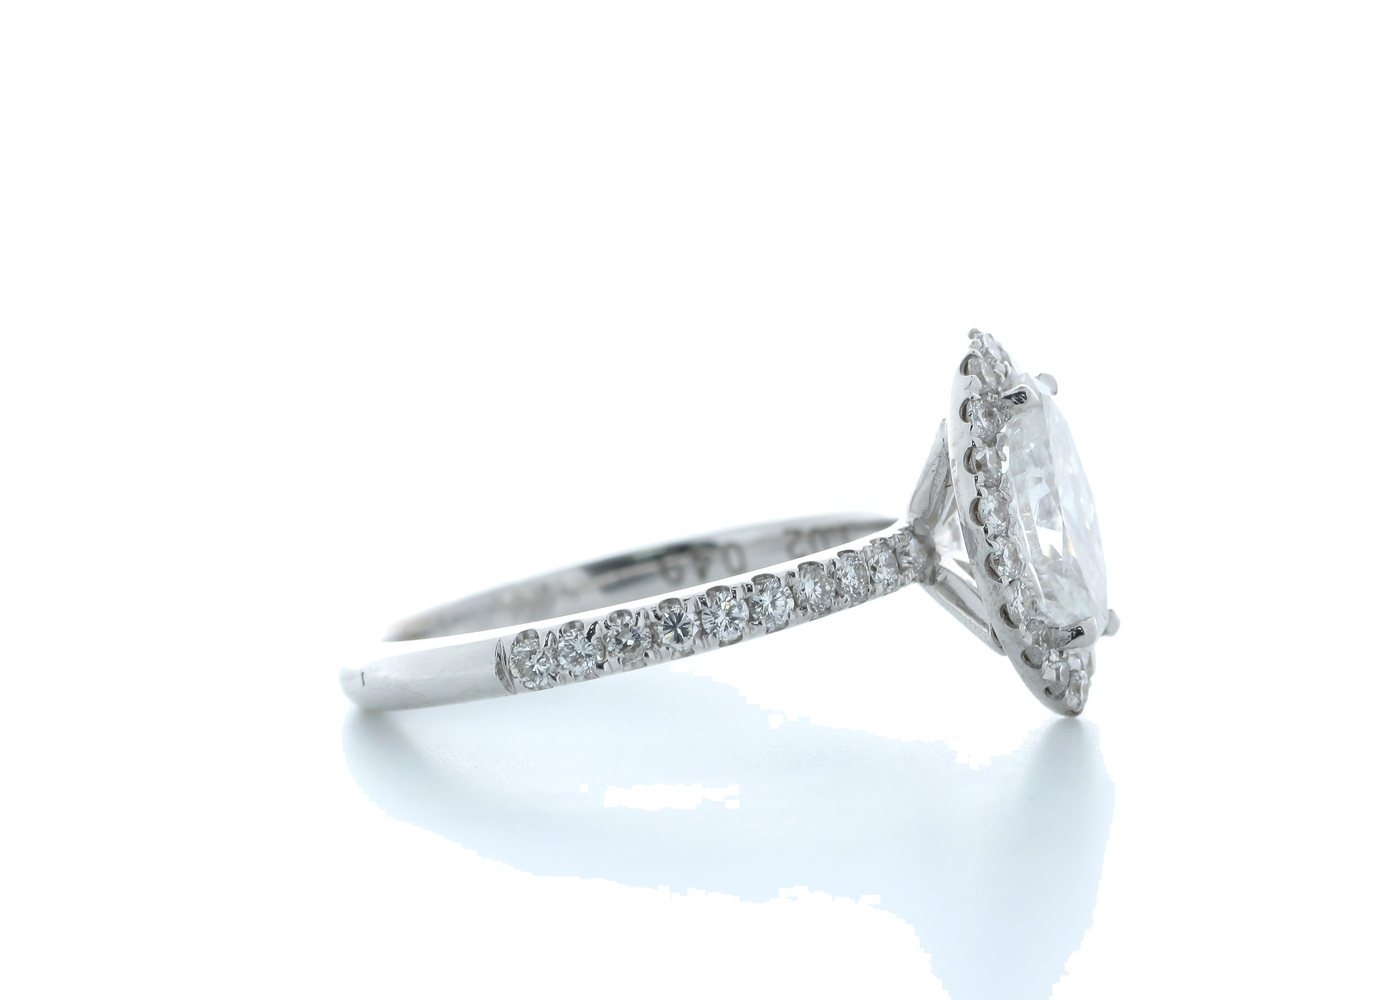 18ct White Gold Marquise Diamond With Halo Setting Ring 1.51 (1.02) Carats - Image 4 of 5